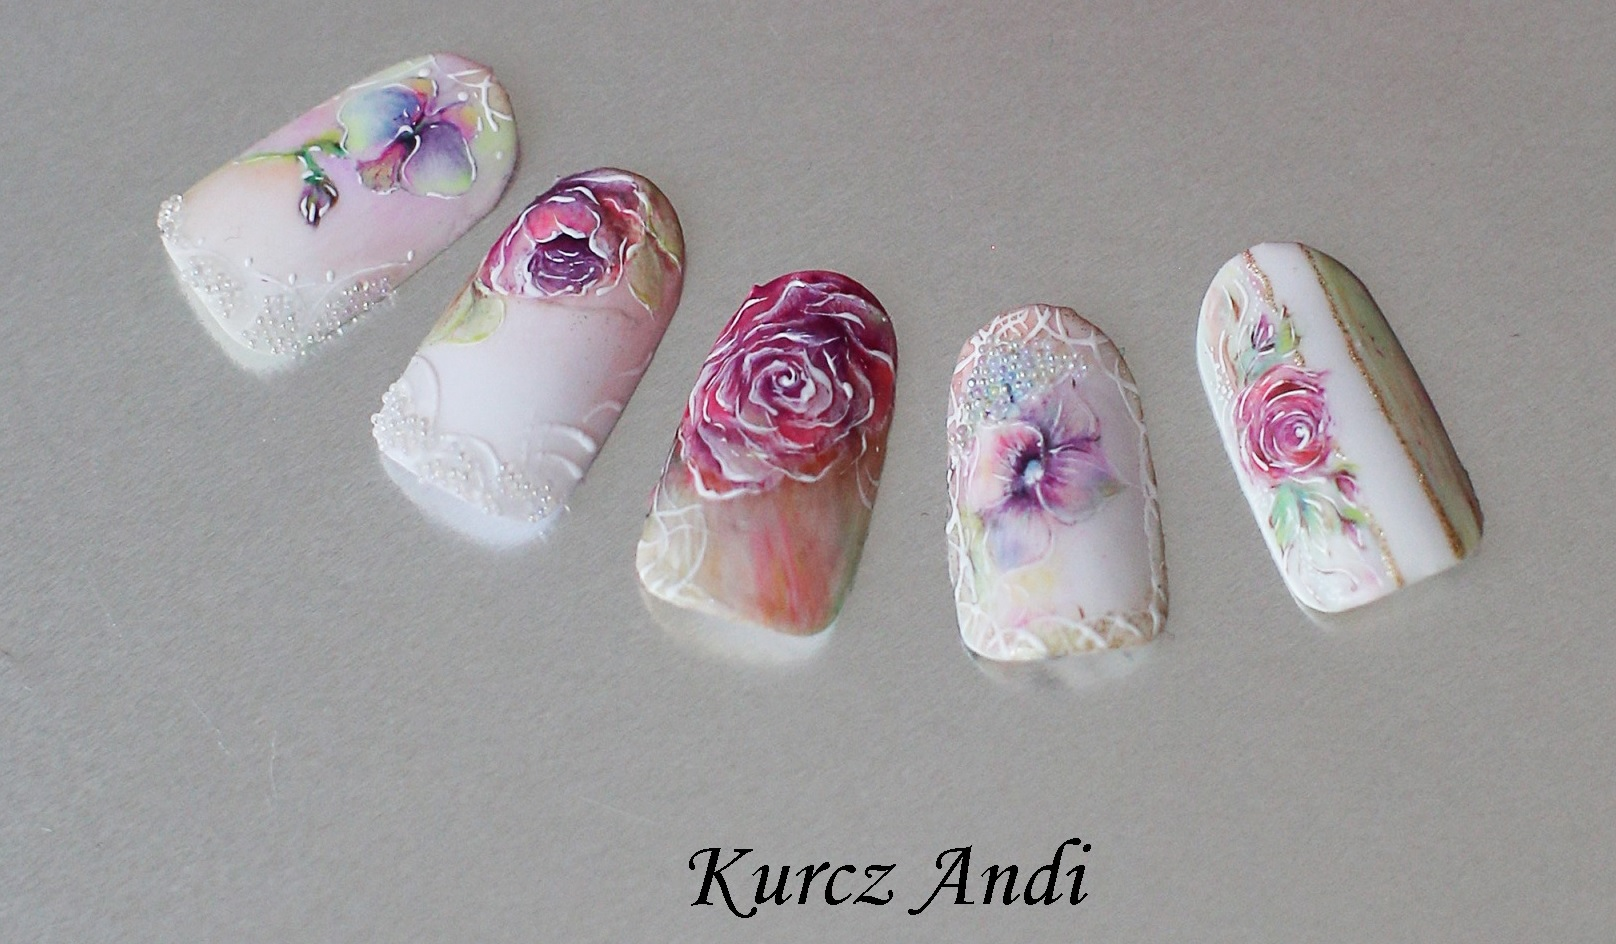 Aquarell Art - Creative Nails Schulung mit Andrea Kurcz